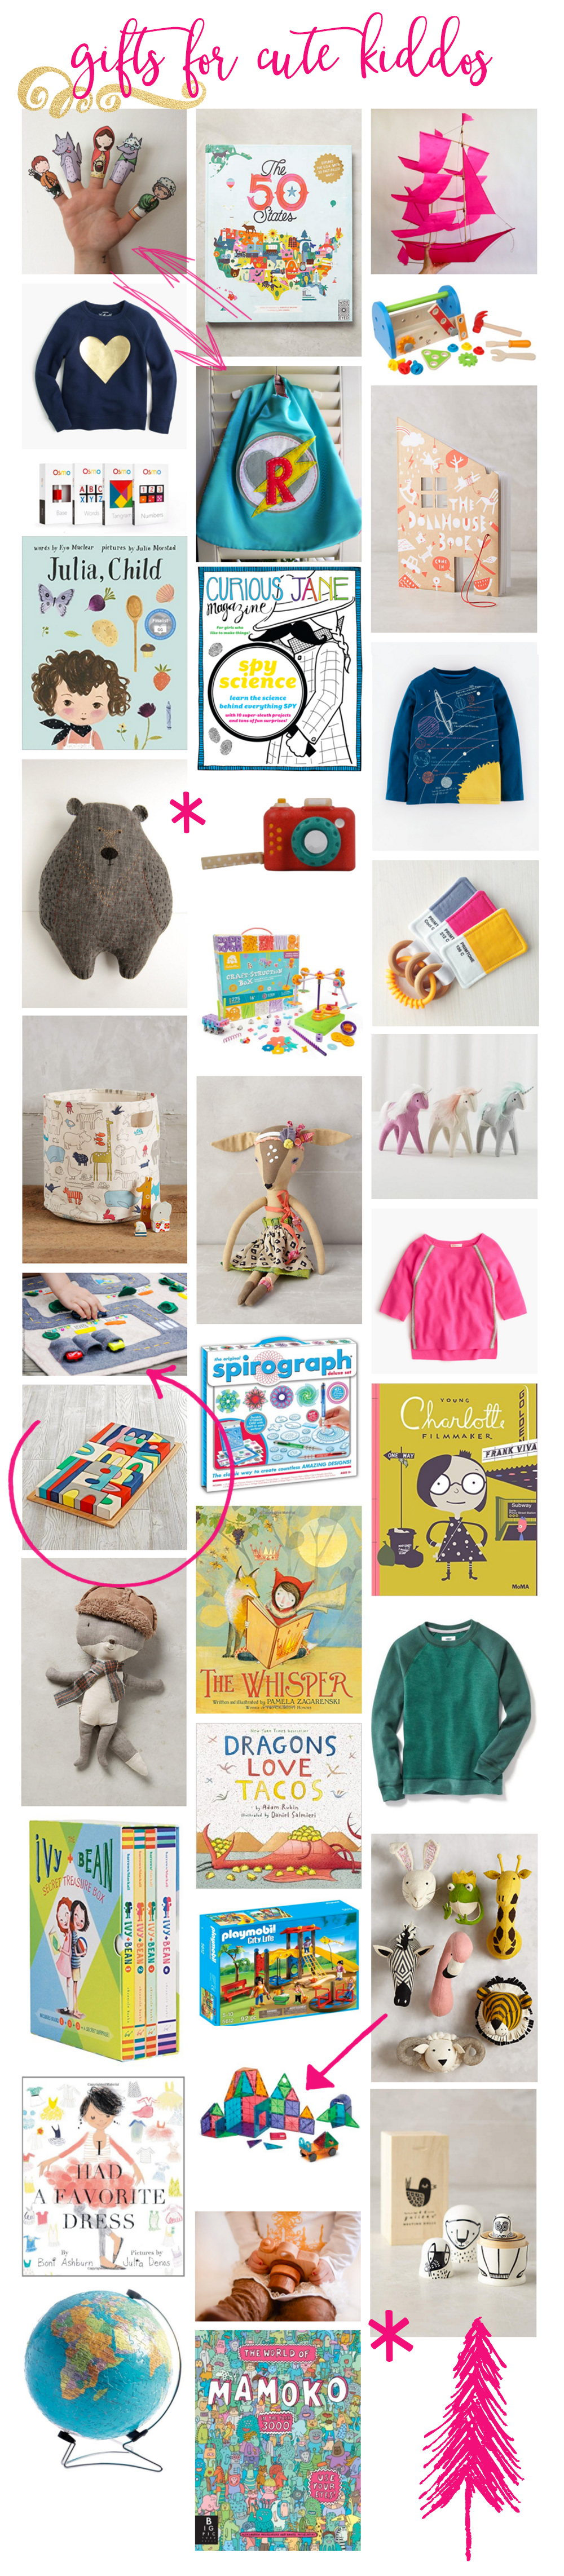 gifts for cute kiddos